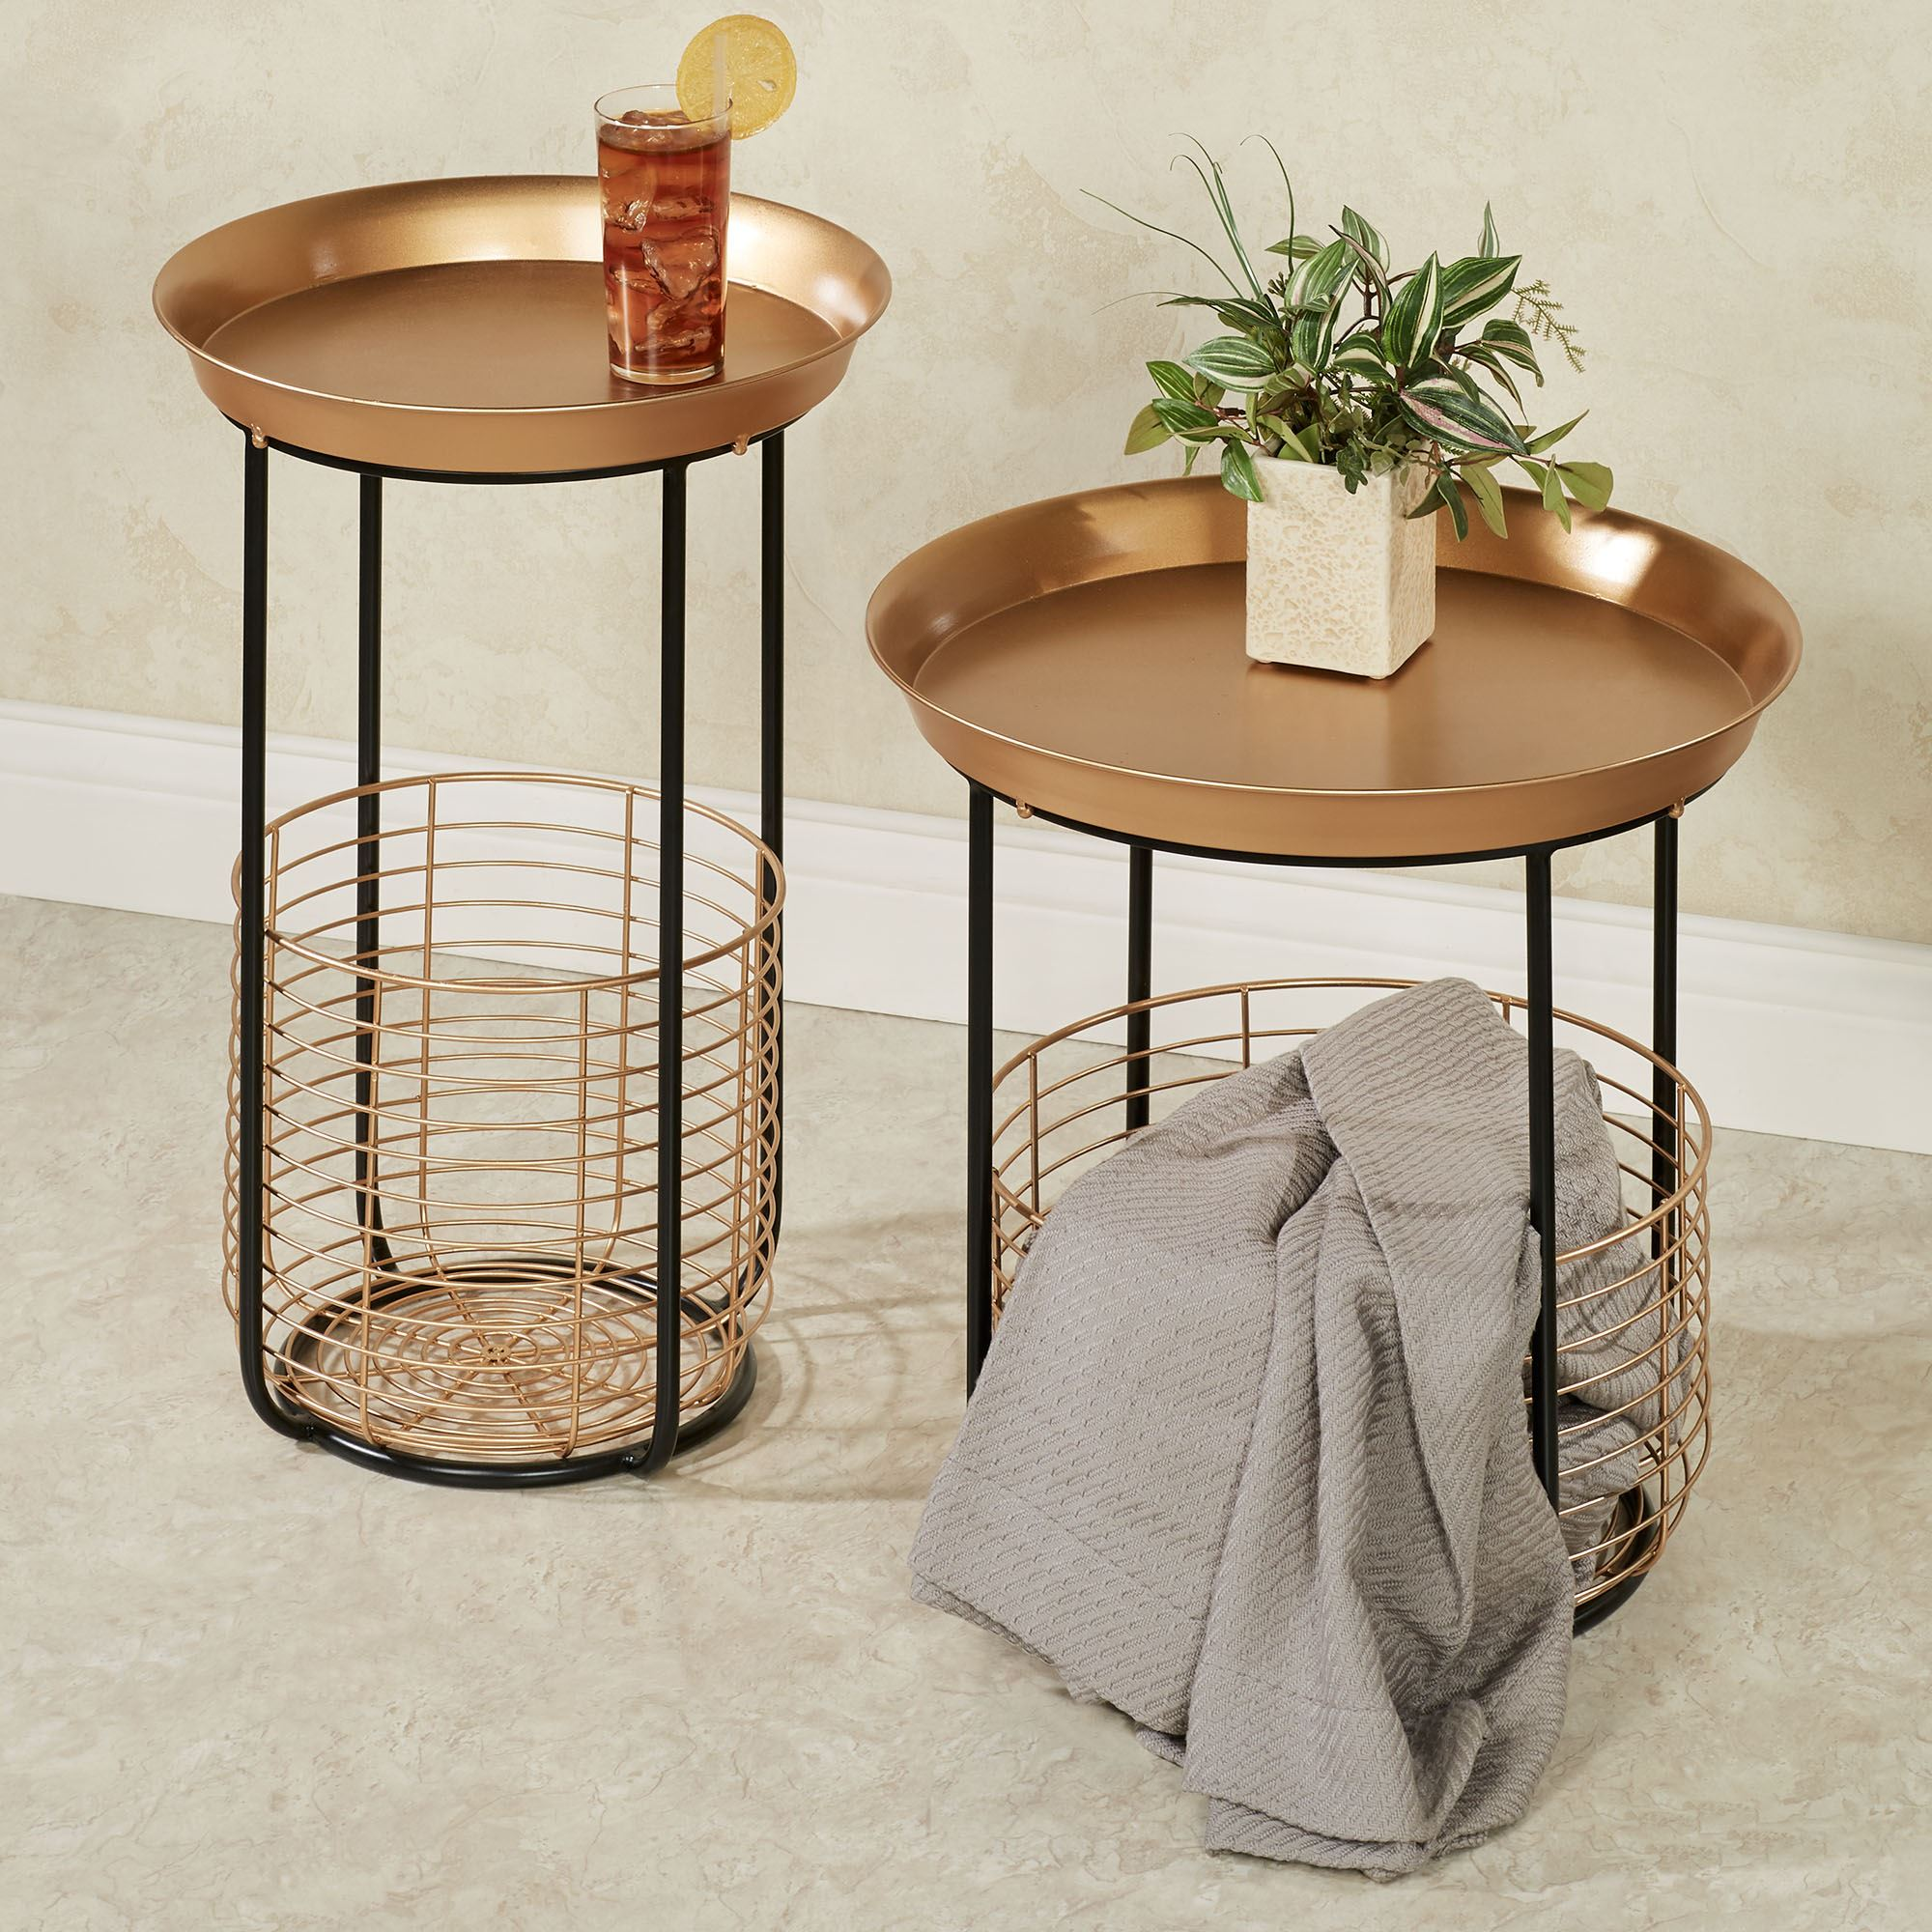 macayle round metal accent tables with wire storage baskets set